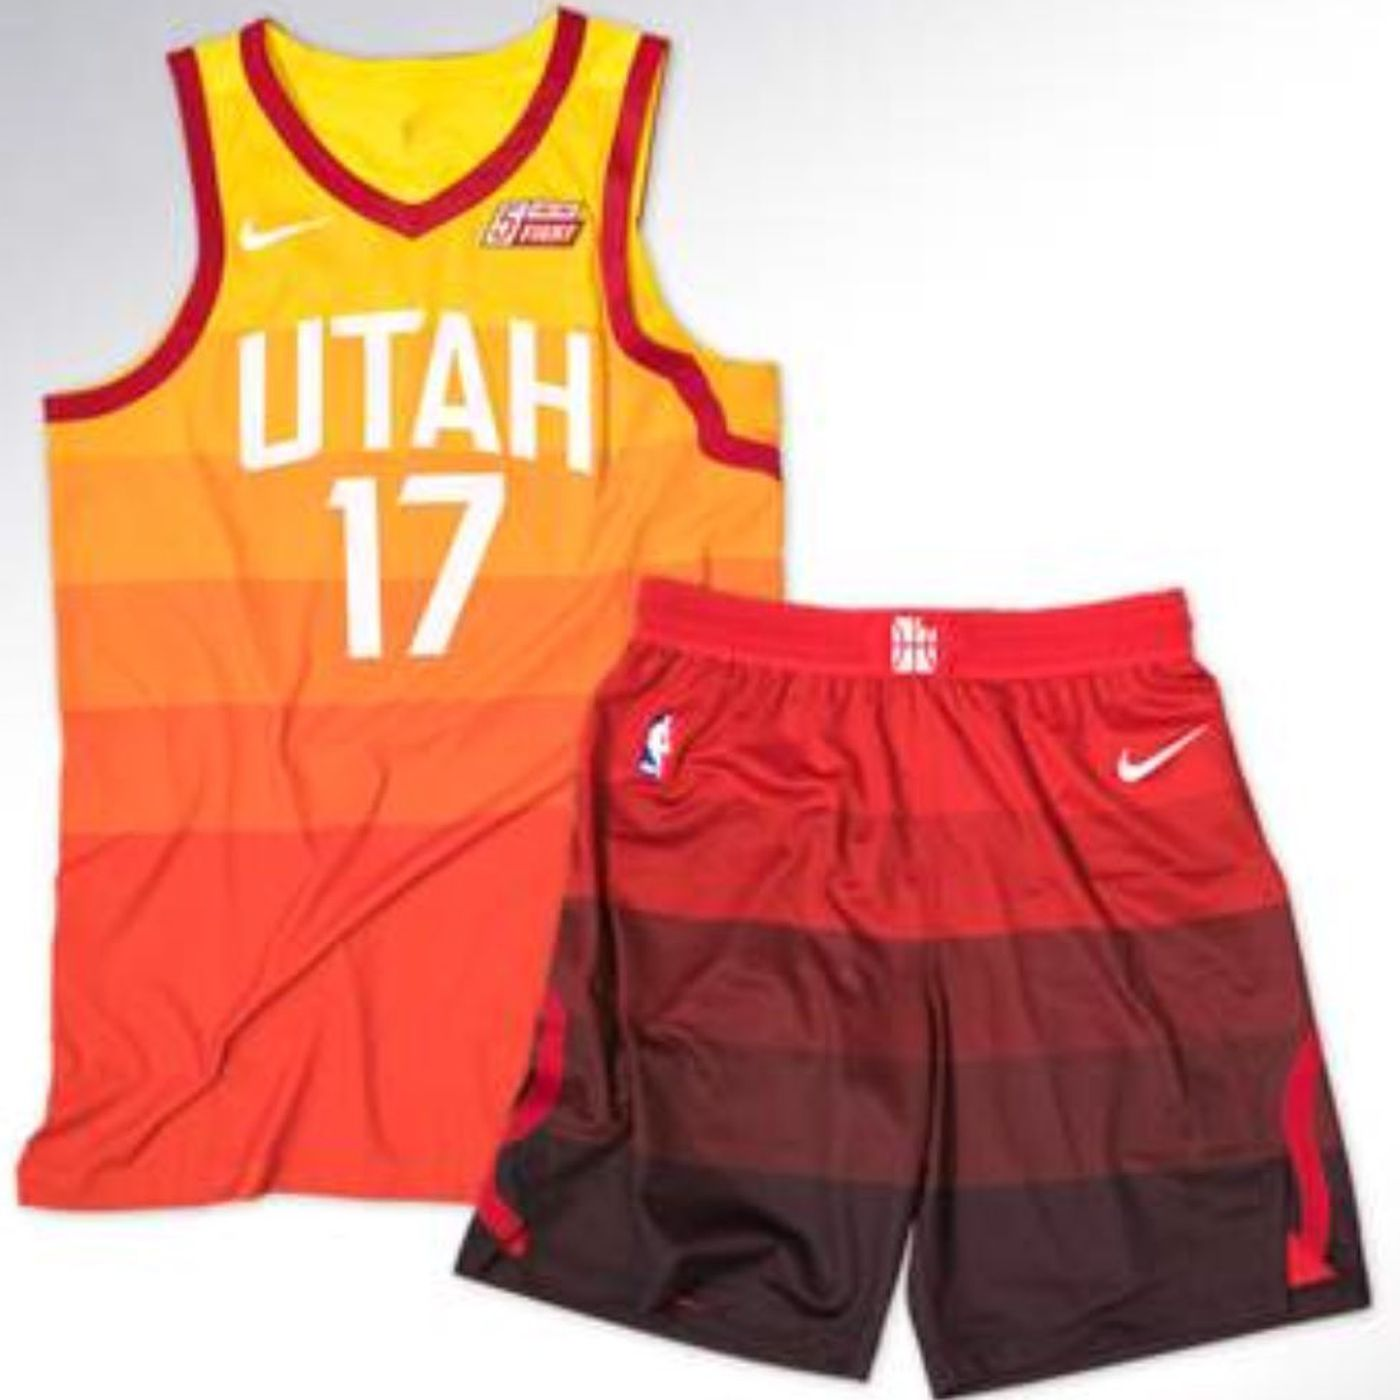 purchase cheap 98ec3 be5c4 New Utah Jazz uniforms pay homage to Utah's sunset and have ...